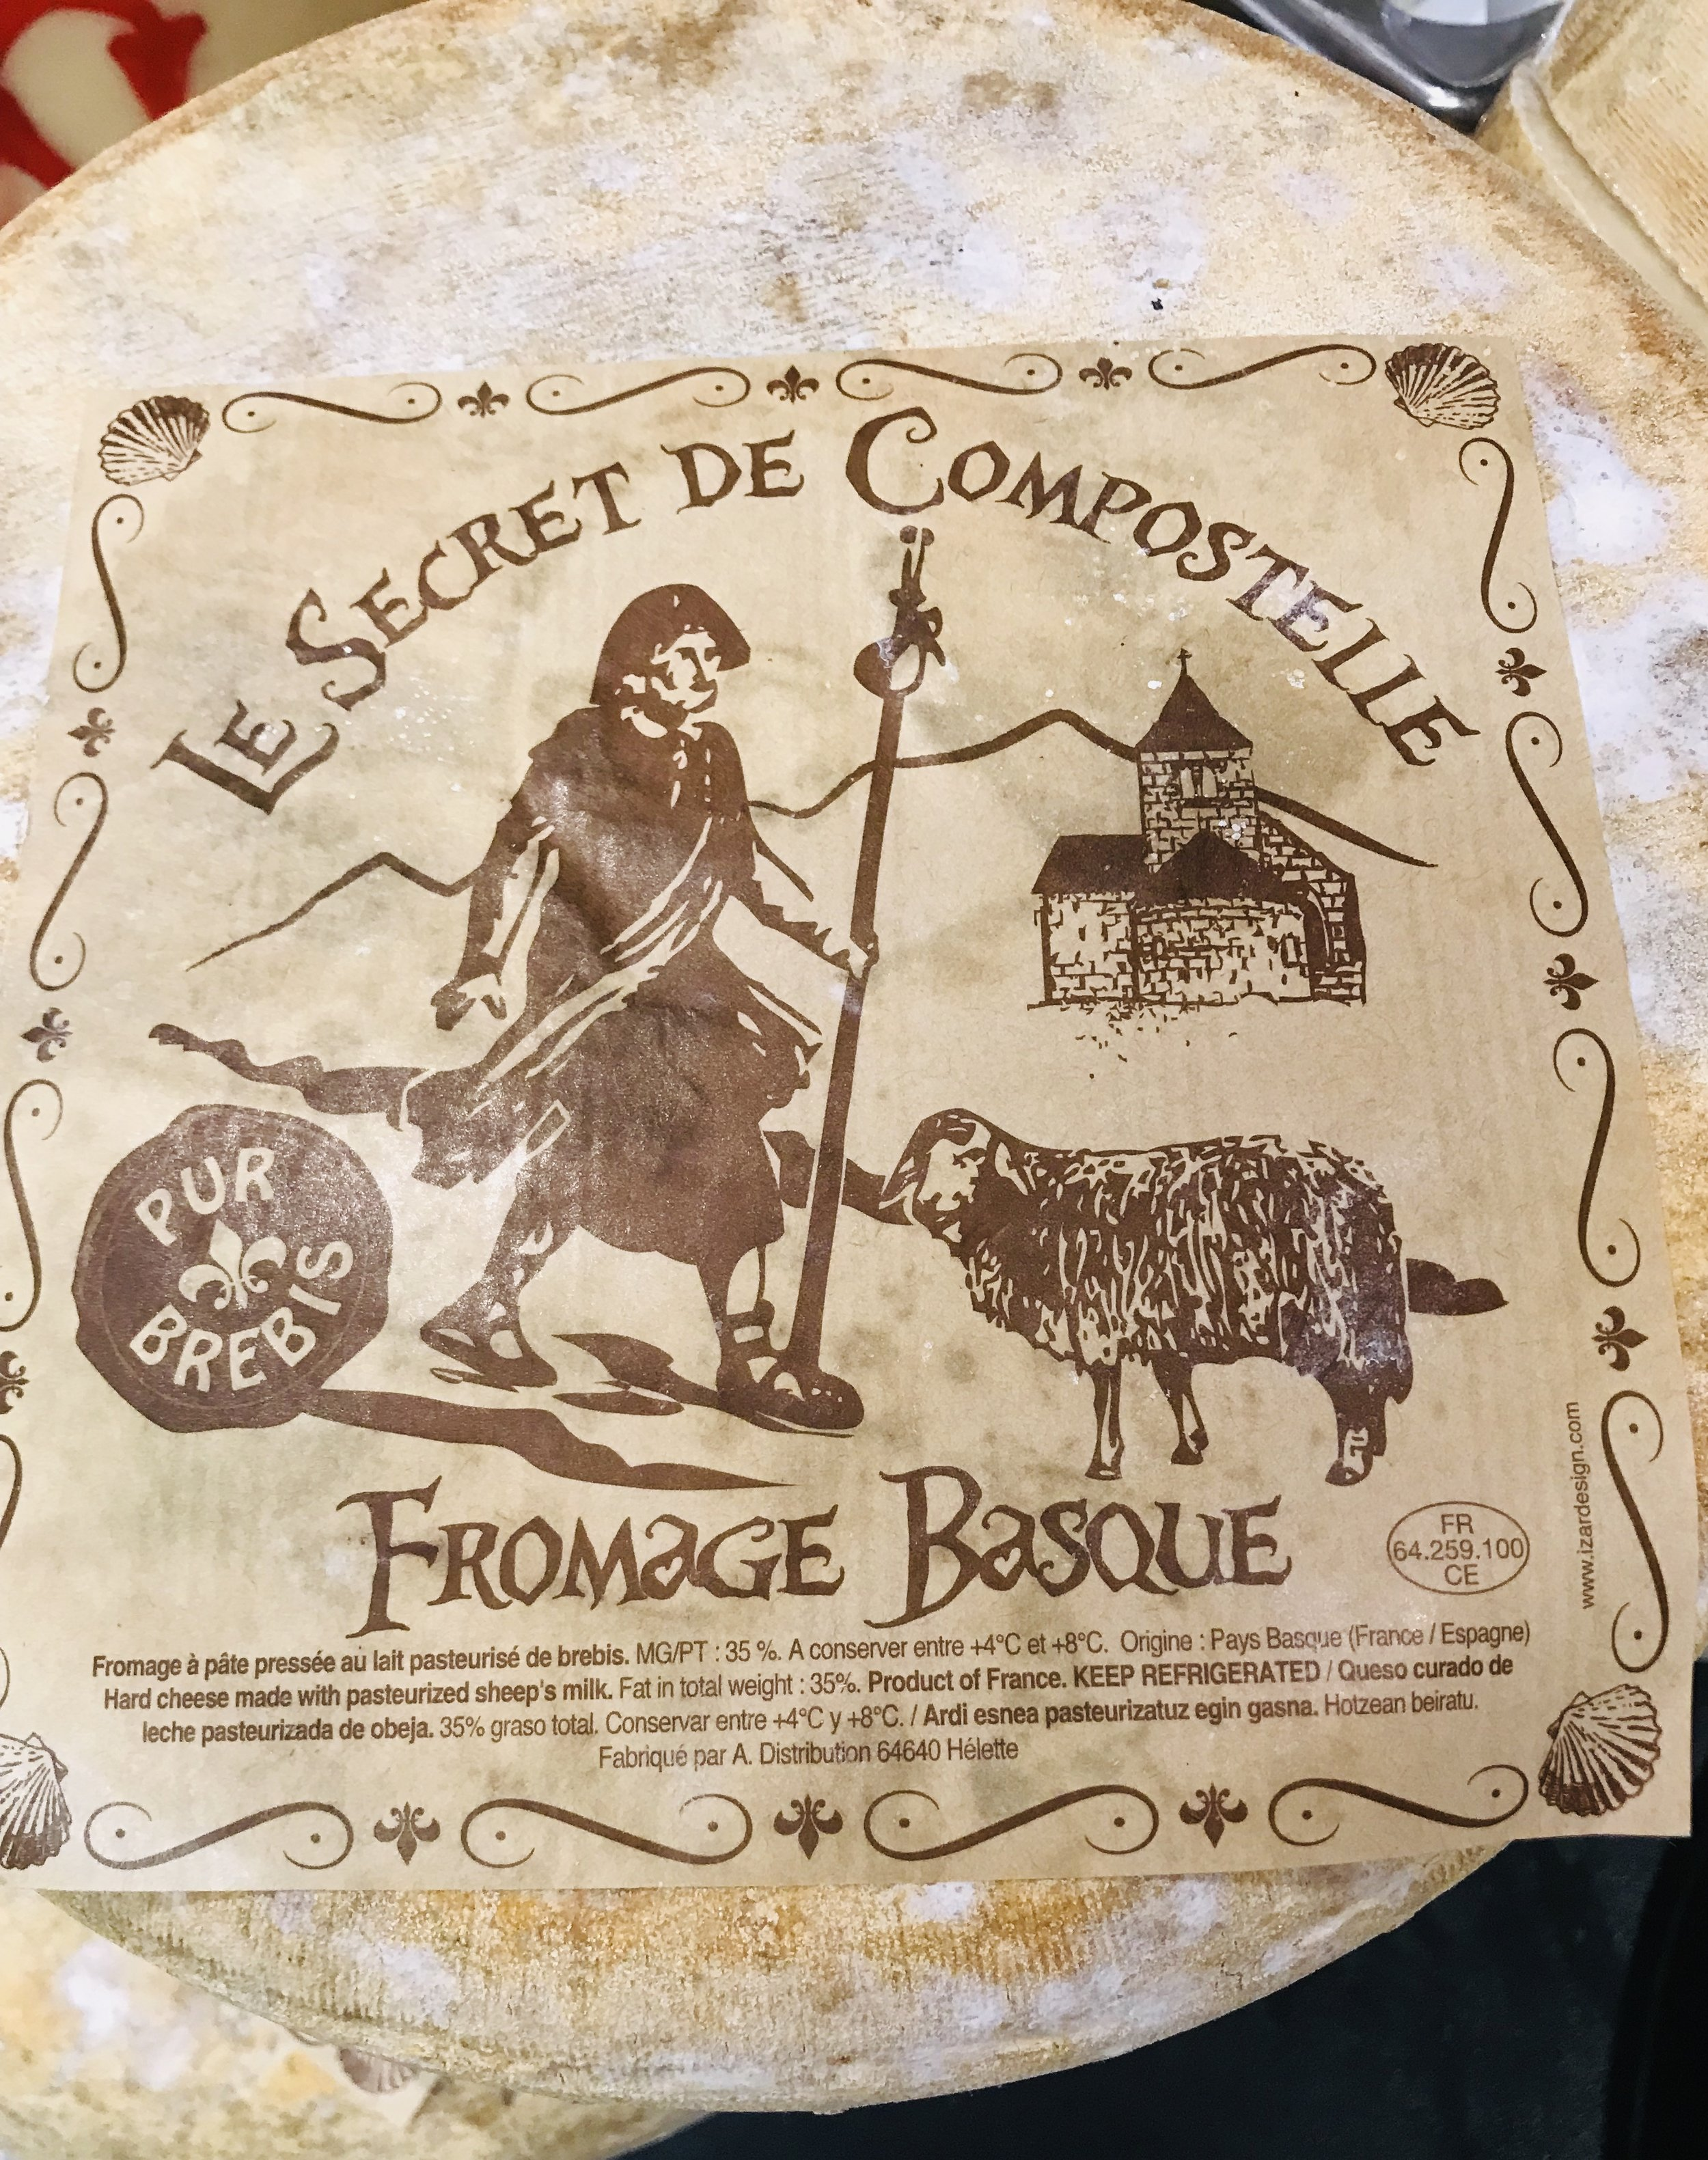 Le Secret de Compostelle is on special this week at Russo's! Stop by for a sample.